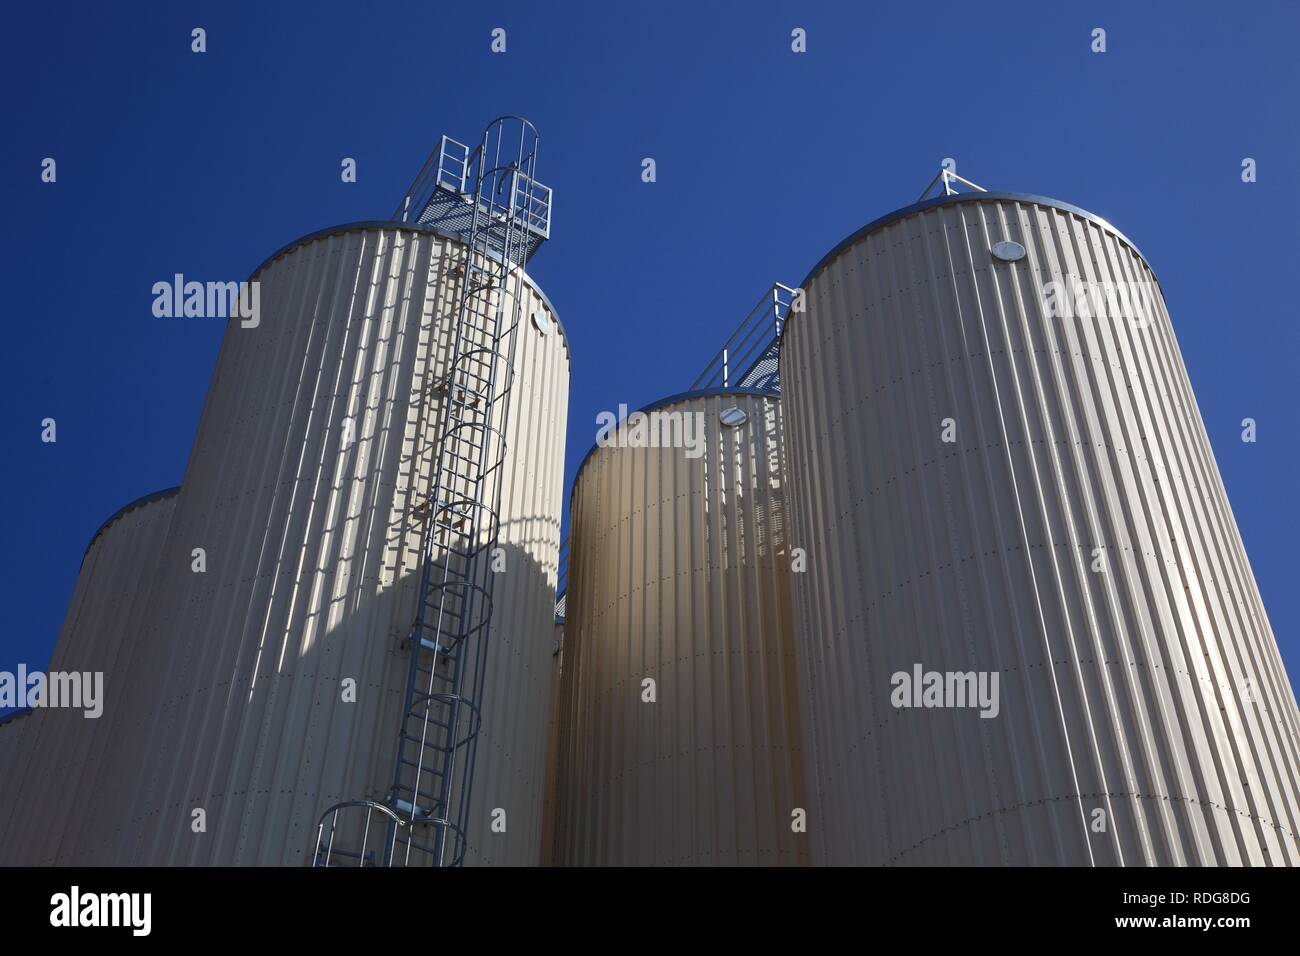 Beer storage tanks of a brewery - Stock Image